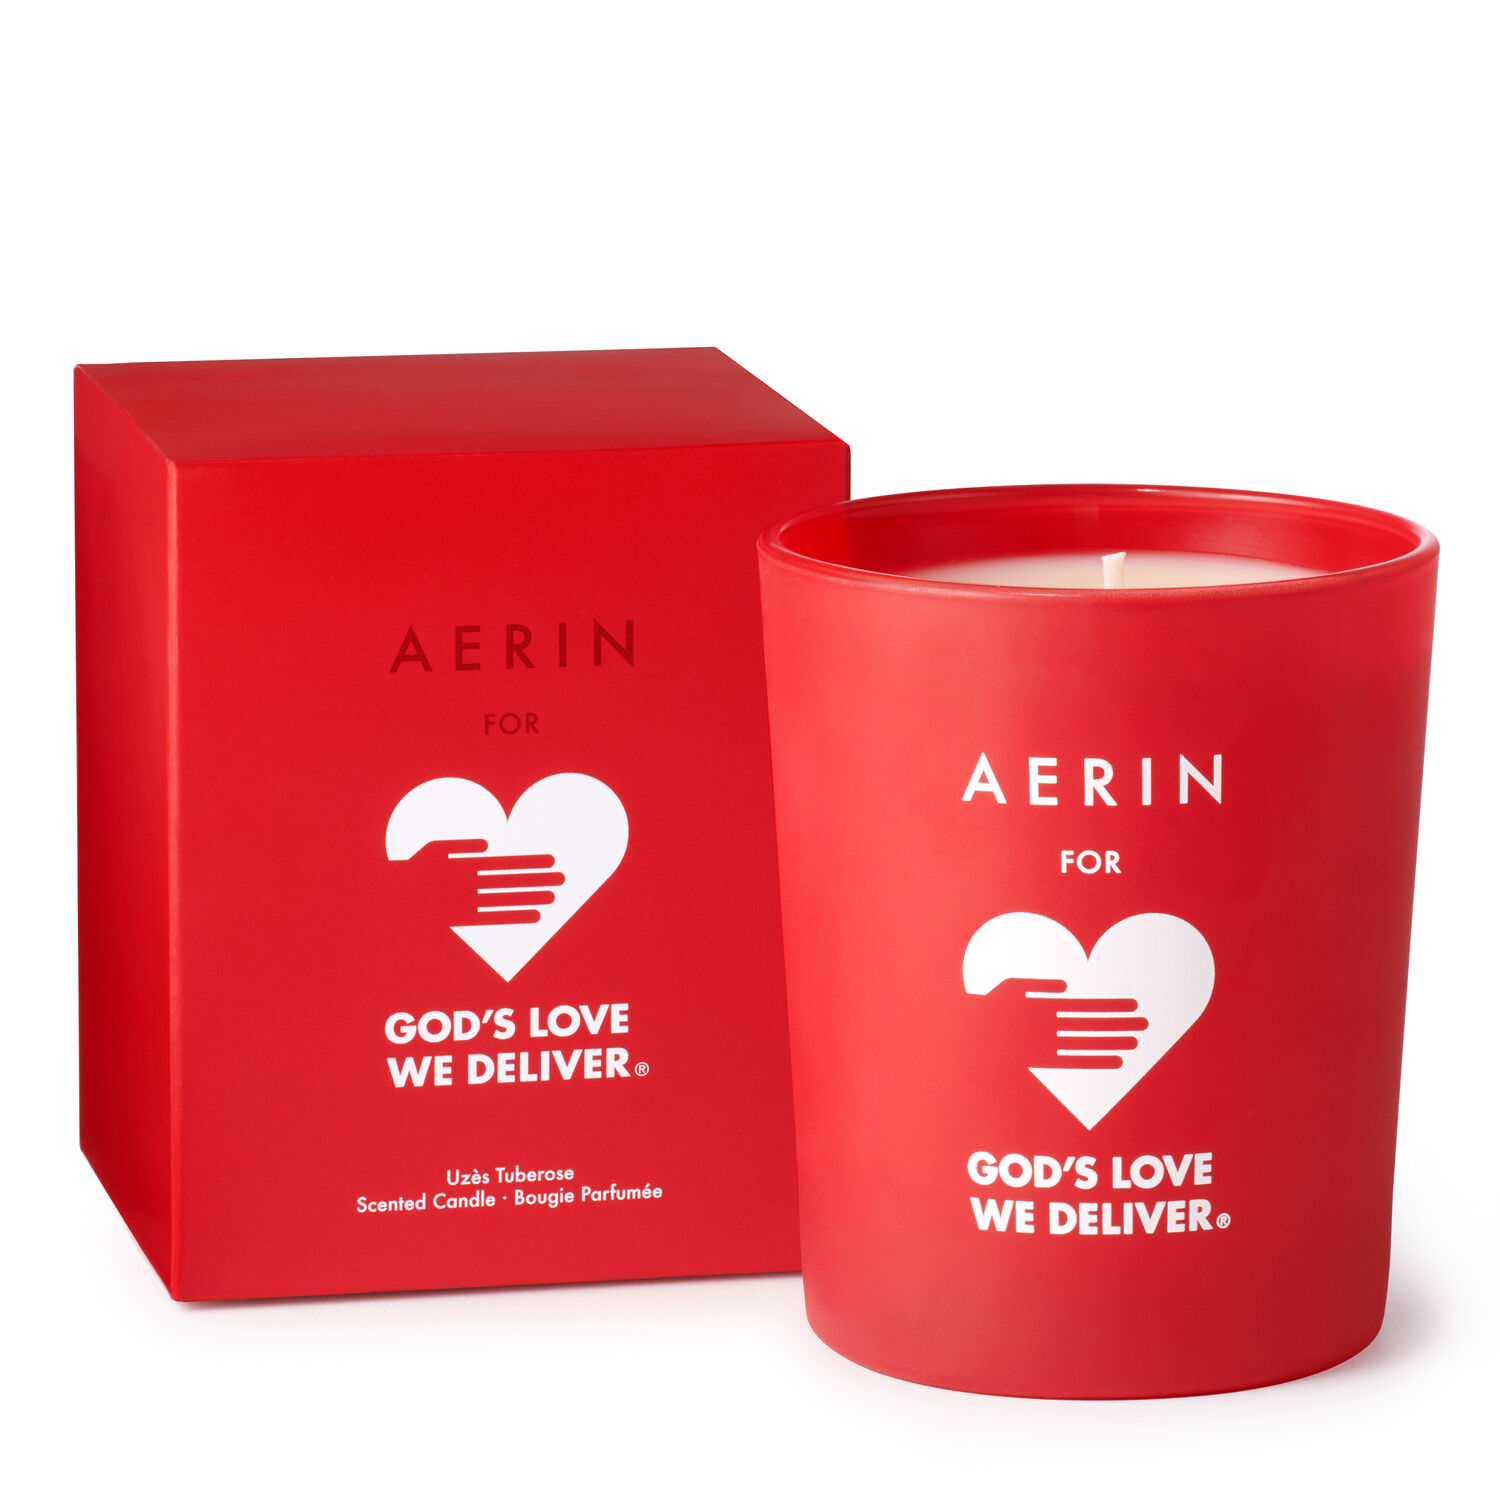 AERIN x God's Love We Deliver Candle